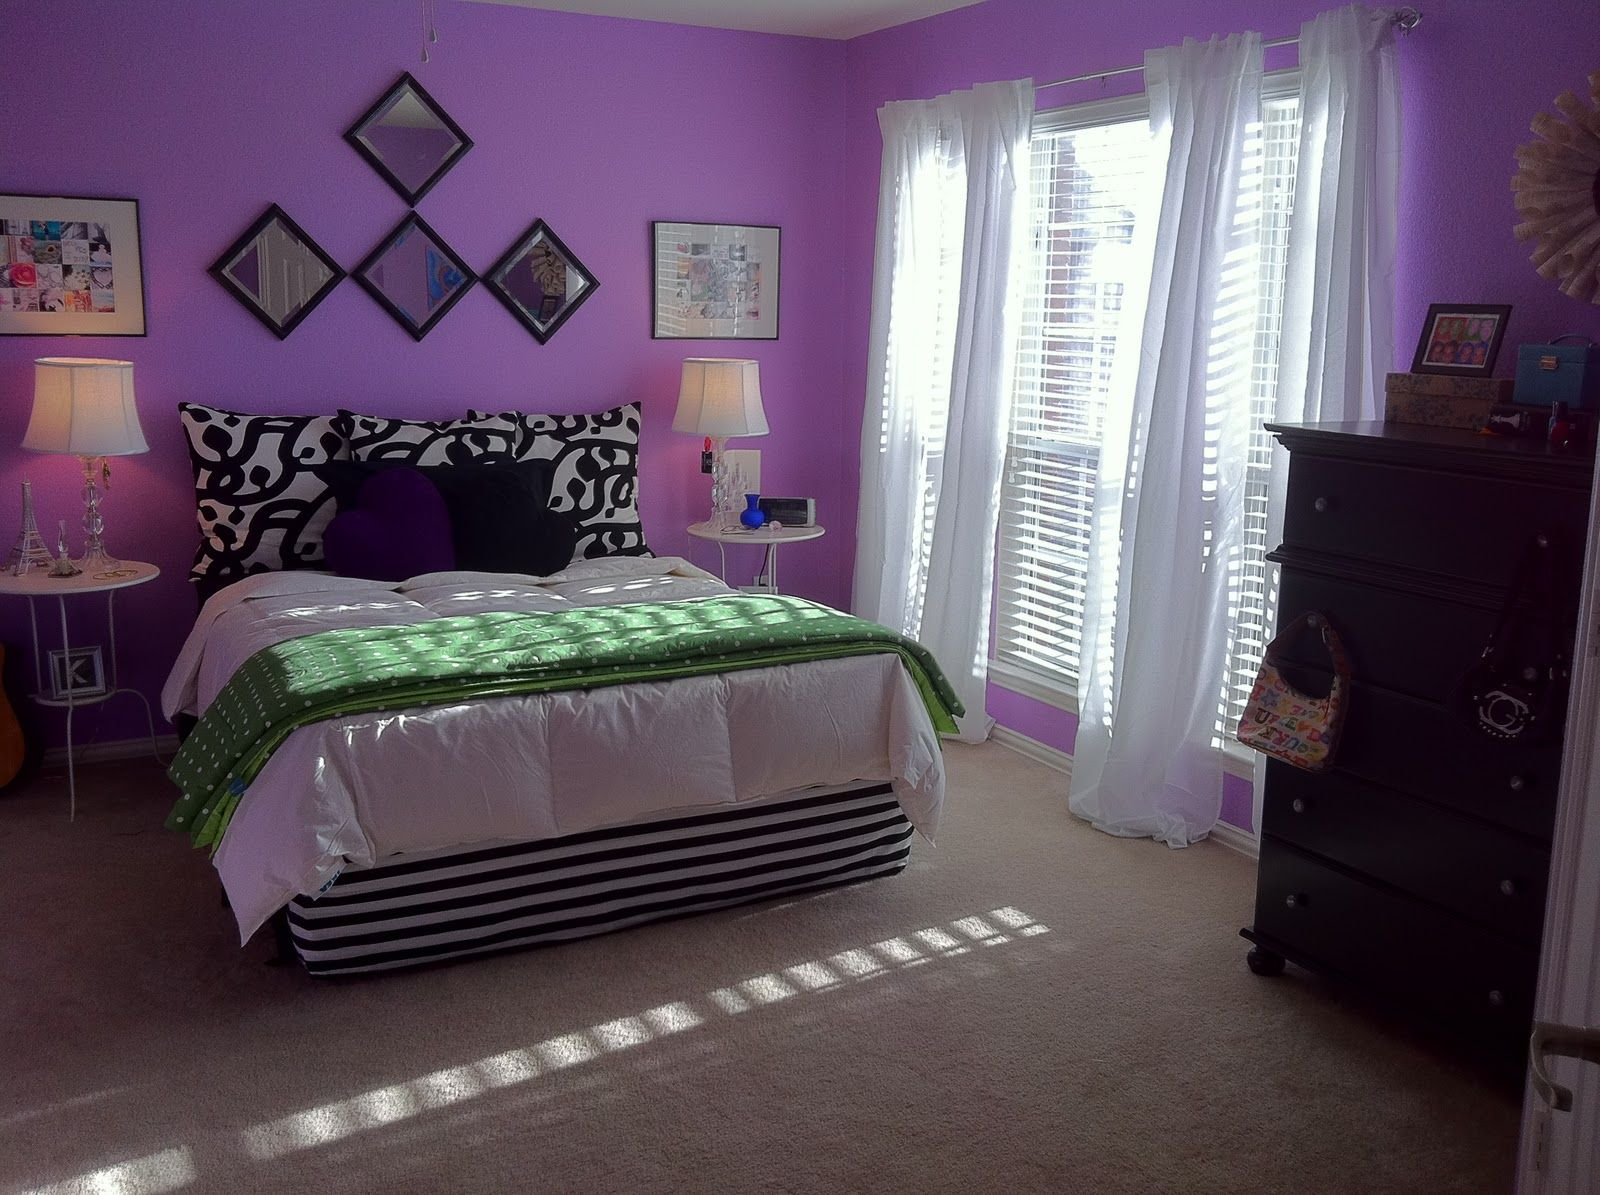 Bedroom Decorating Ideas Purple purple teen bedrooms | room ideas :) | pinterest | purple teen